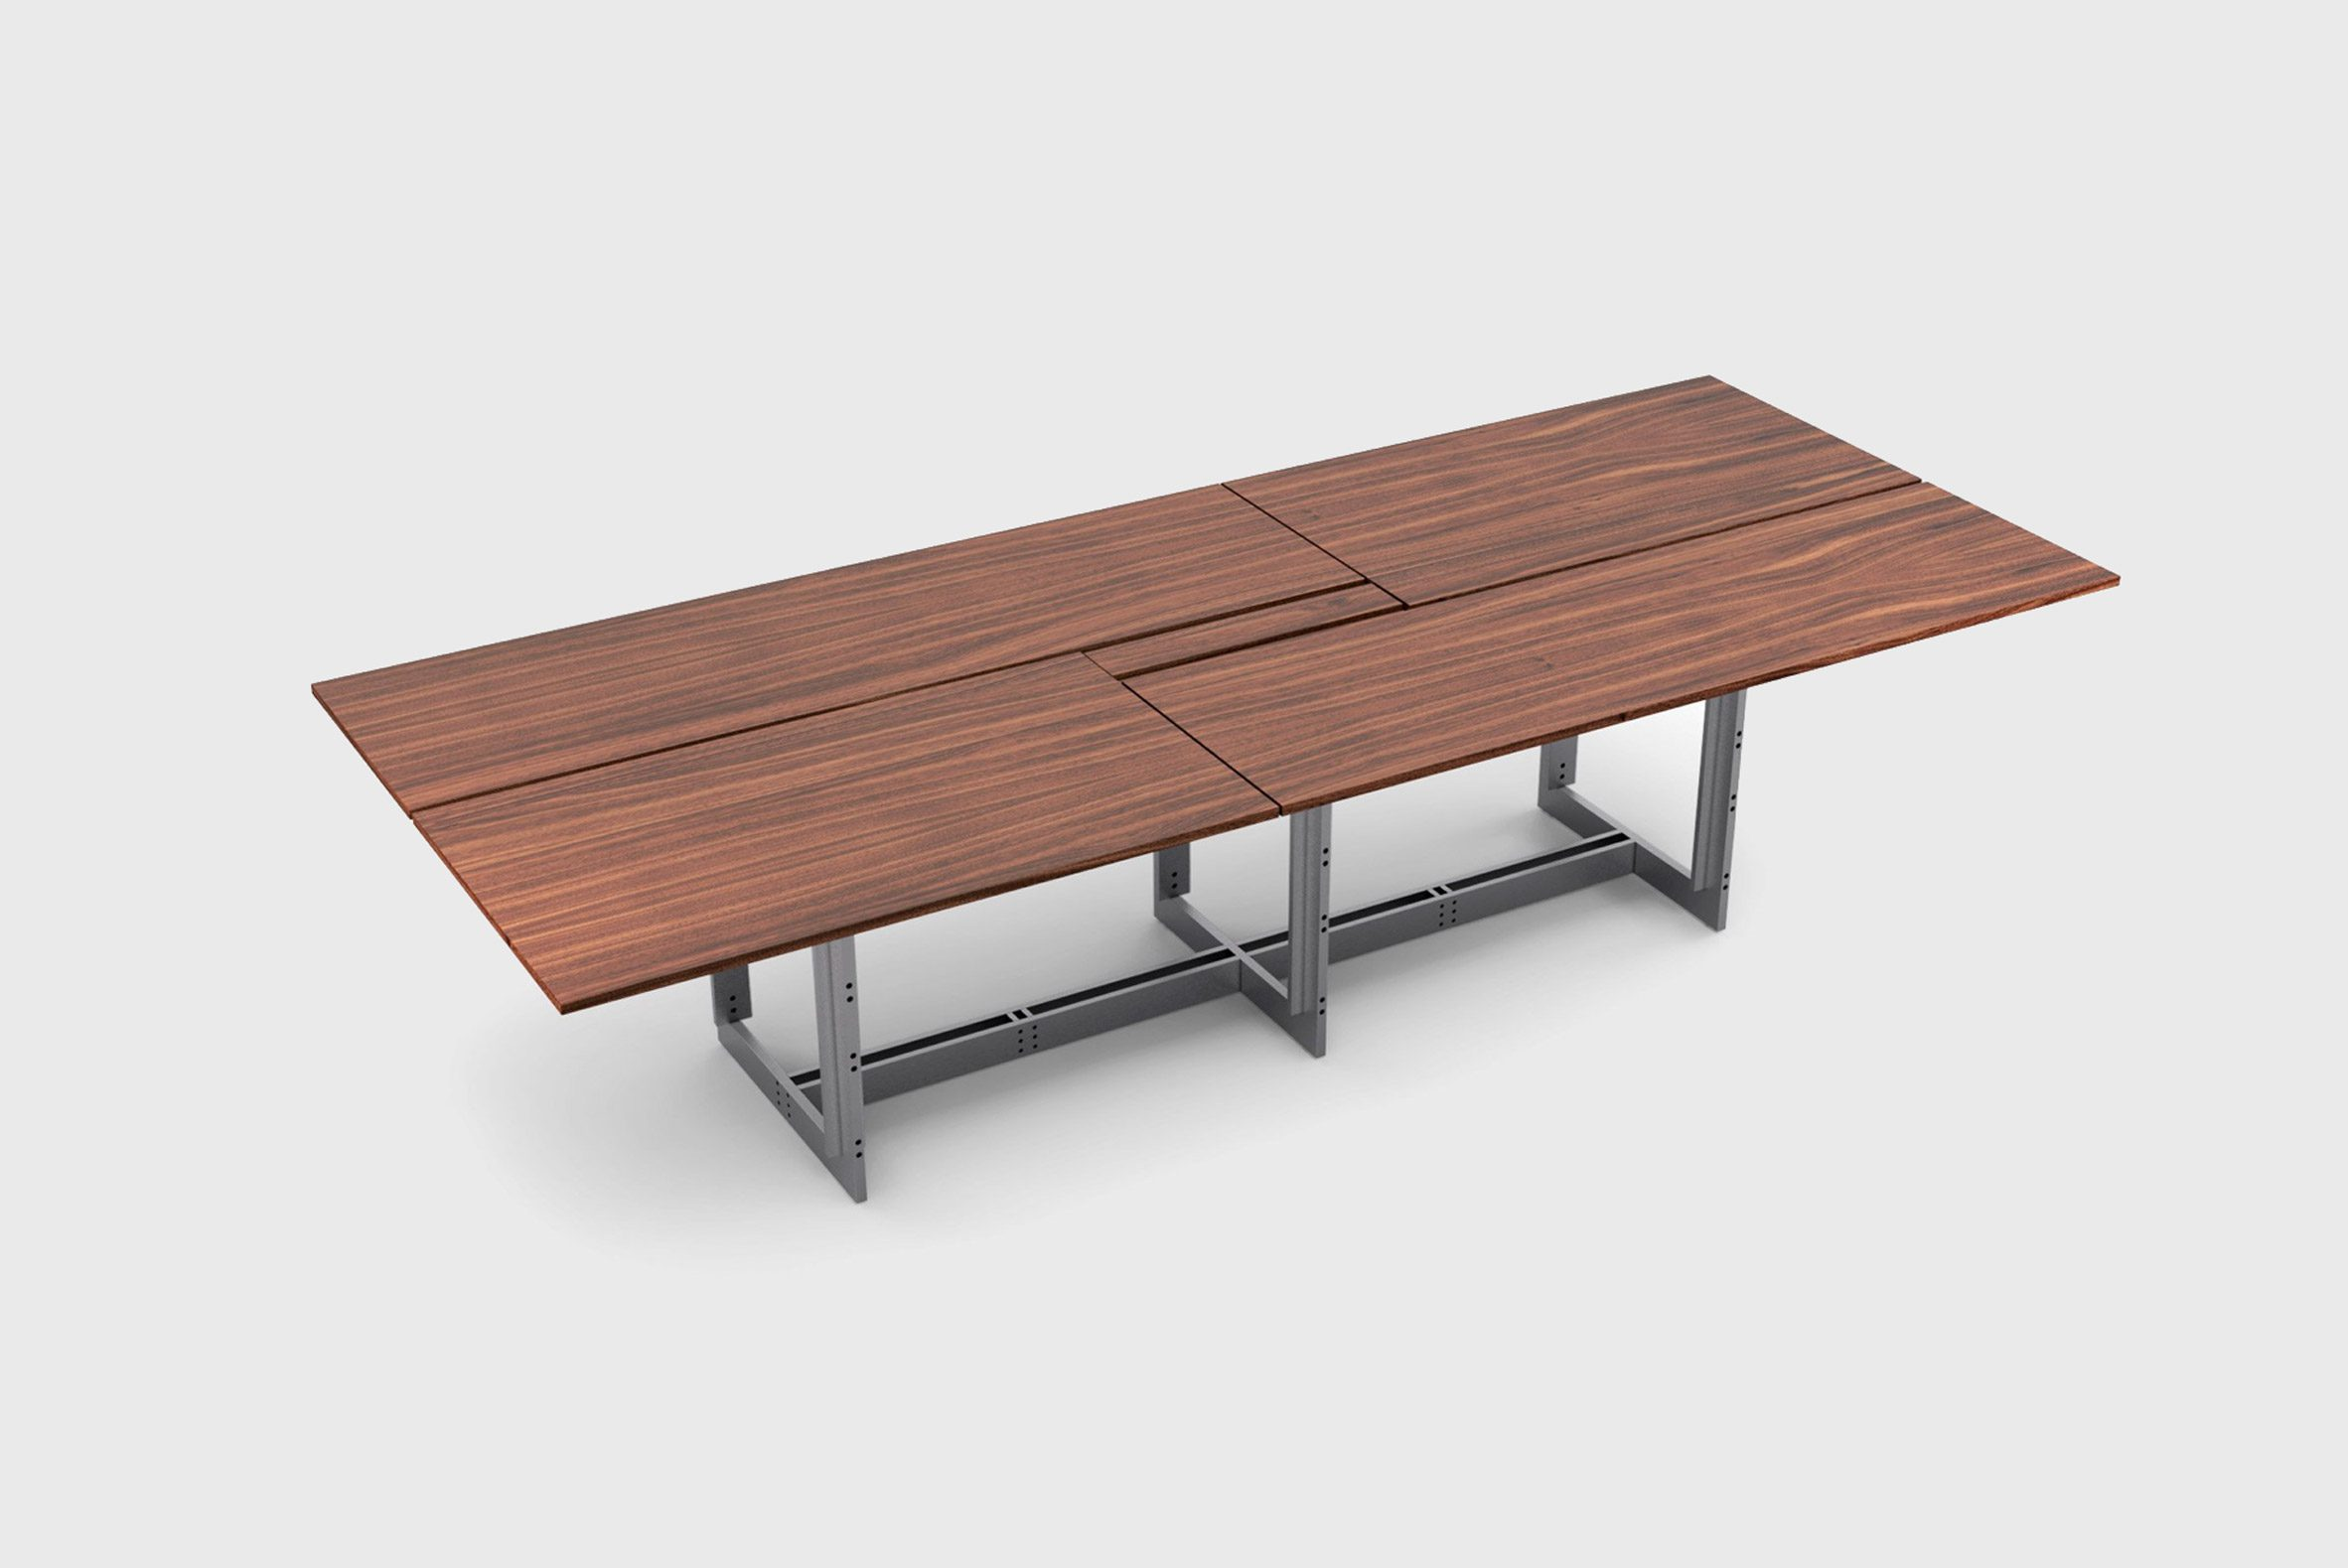 A image of a wooden table